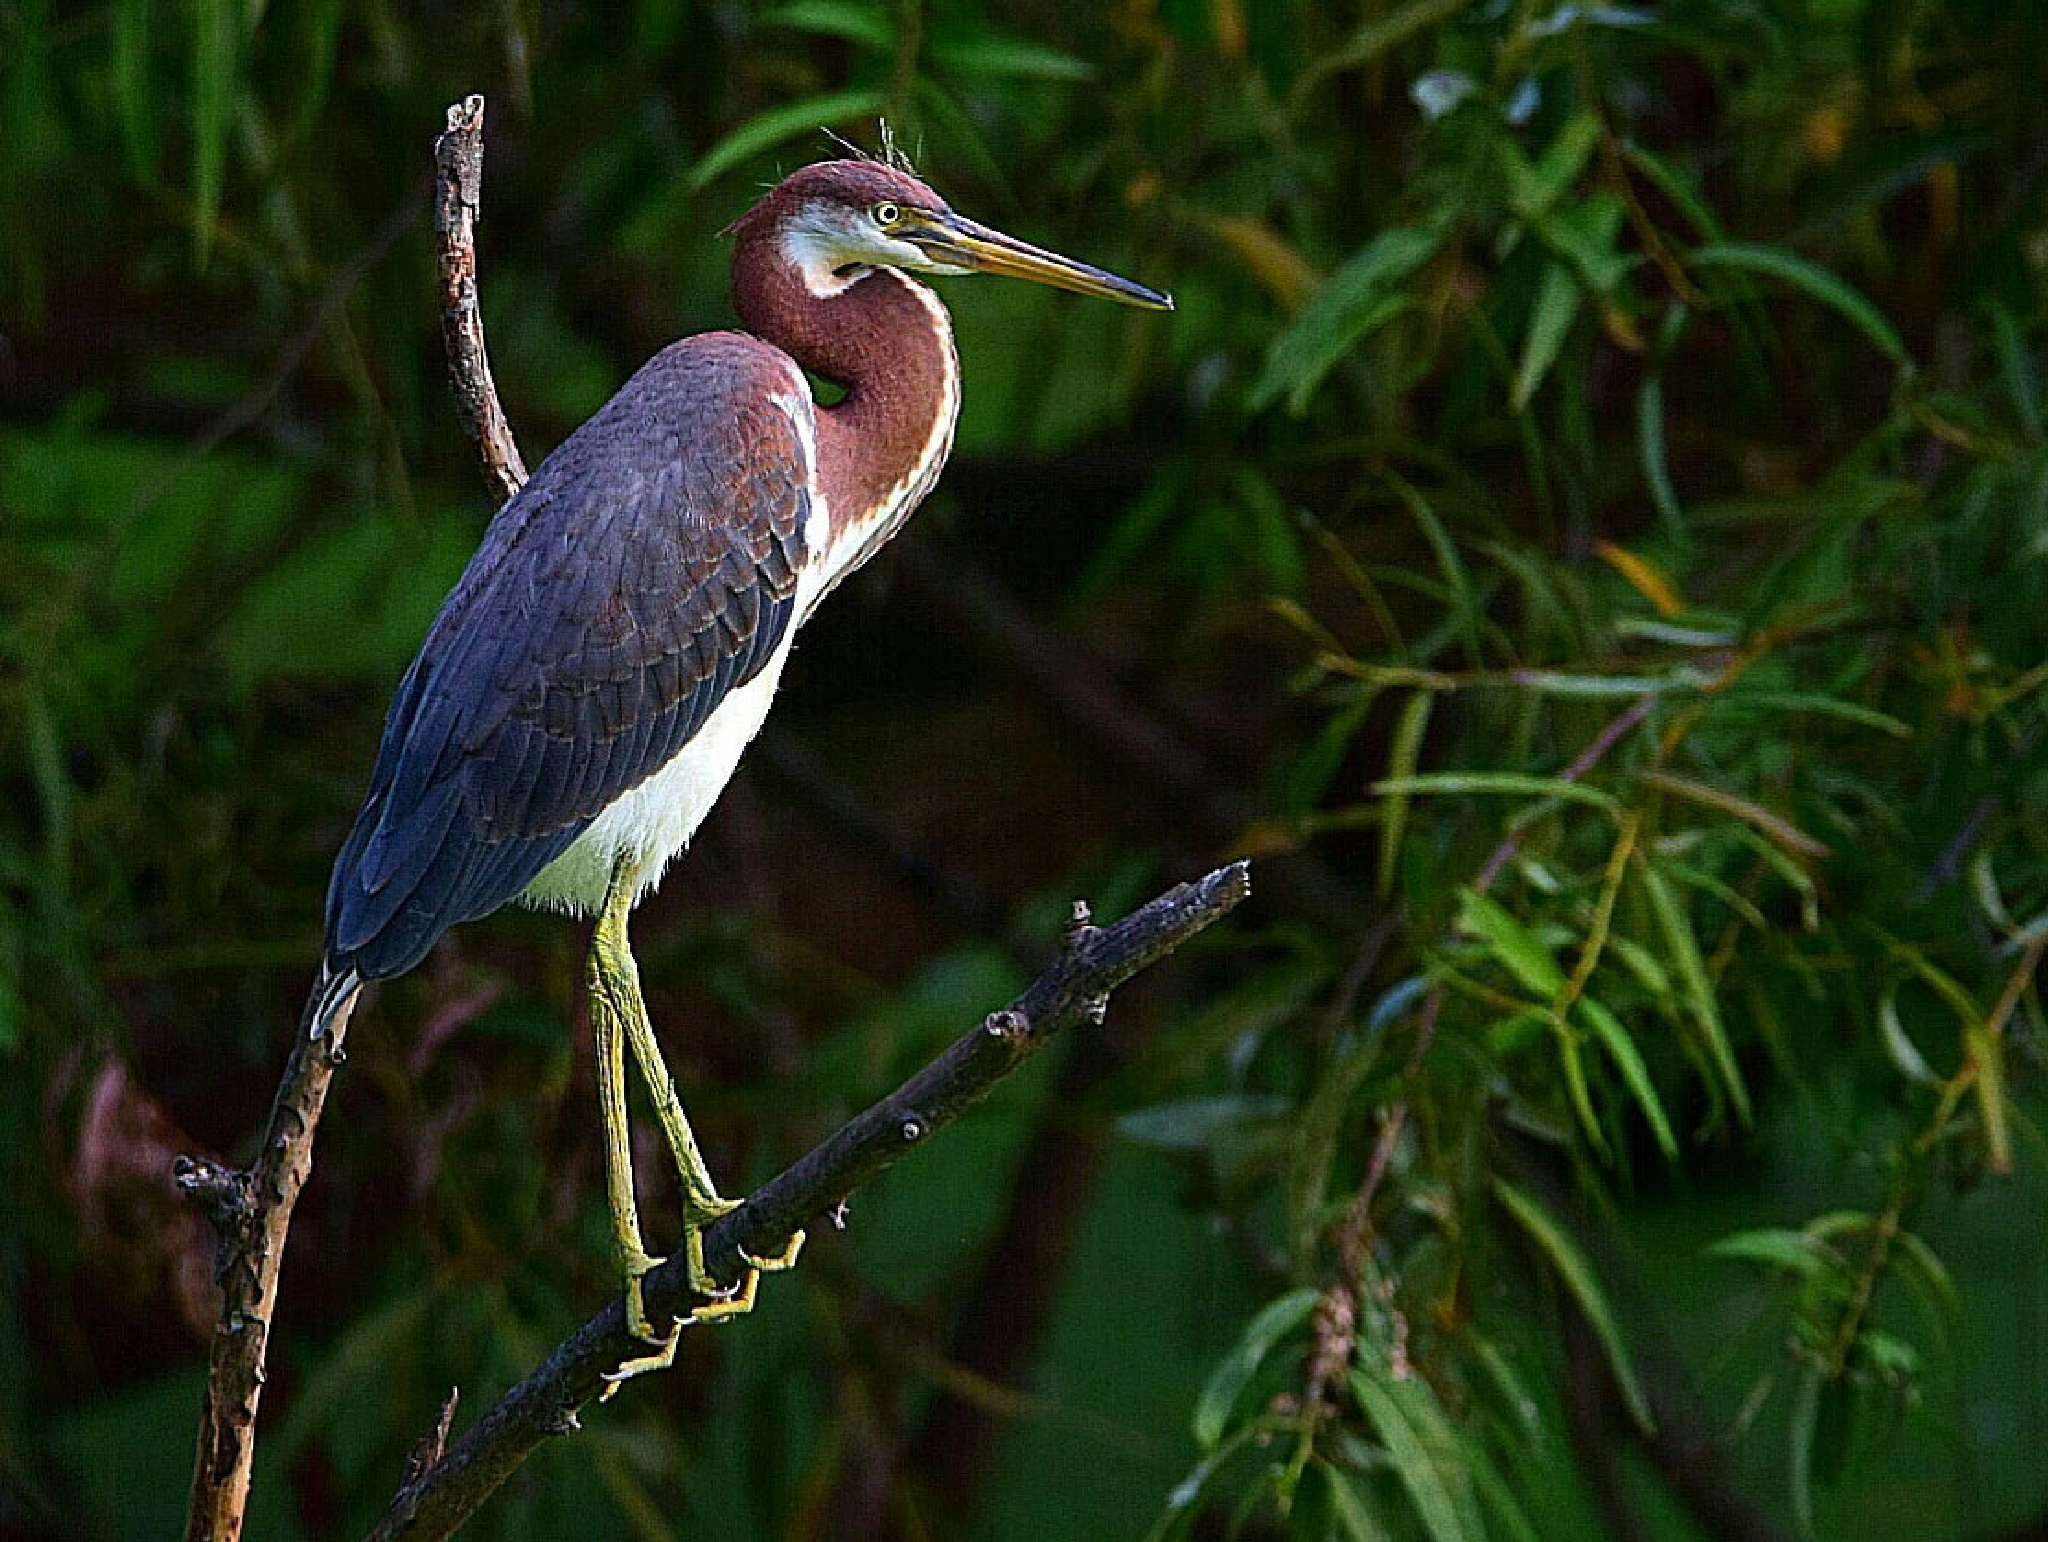 Tricolor Heron by Tom Kitchen